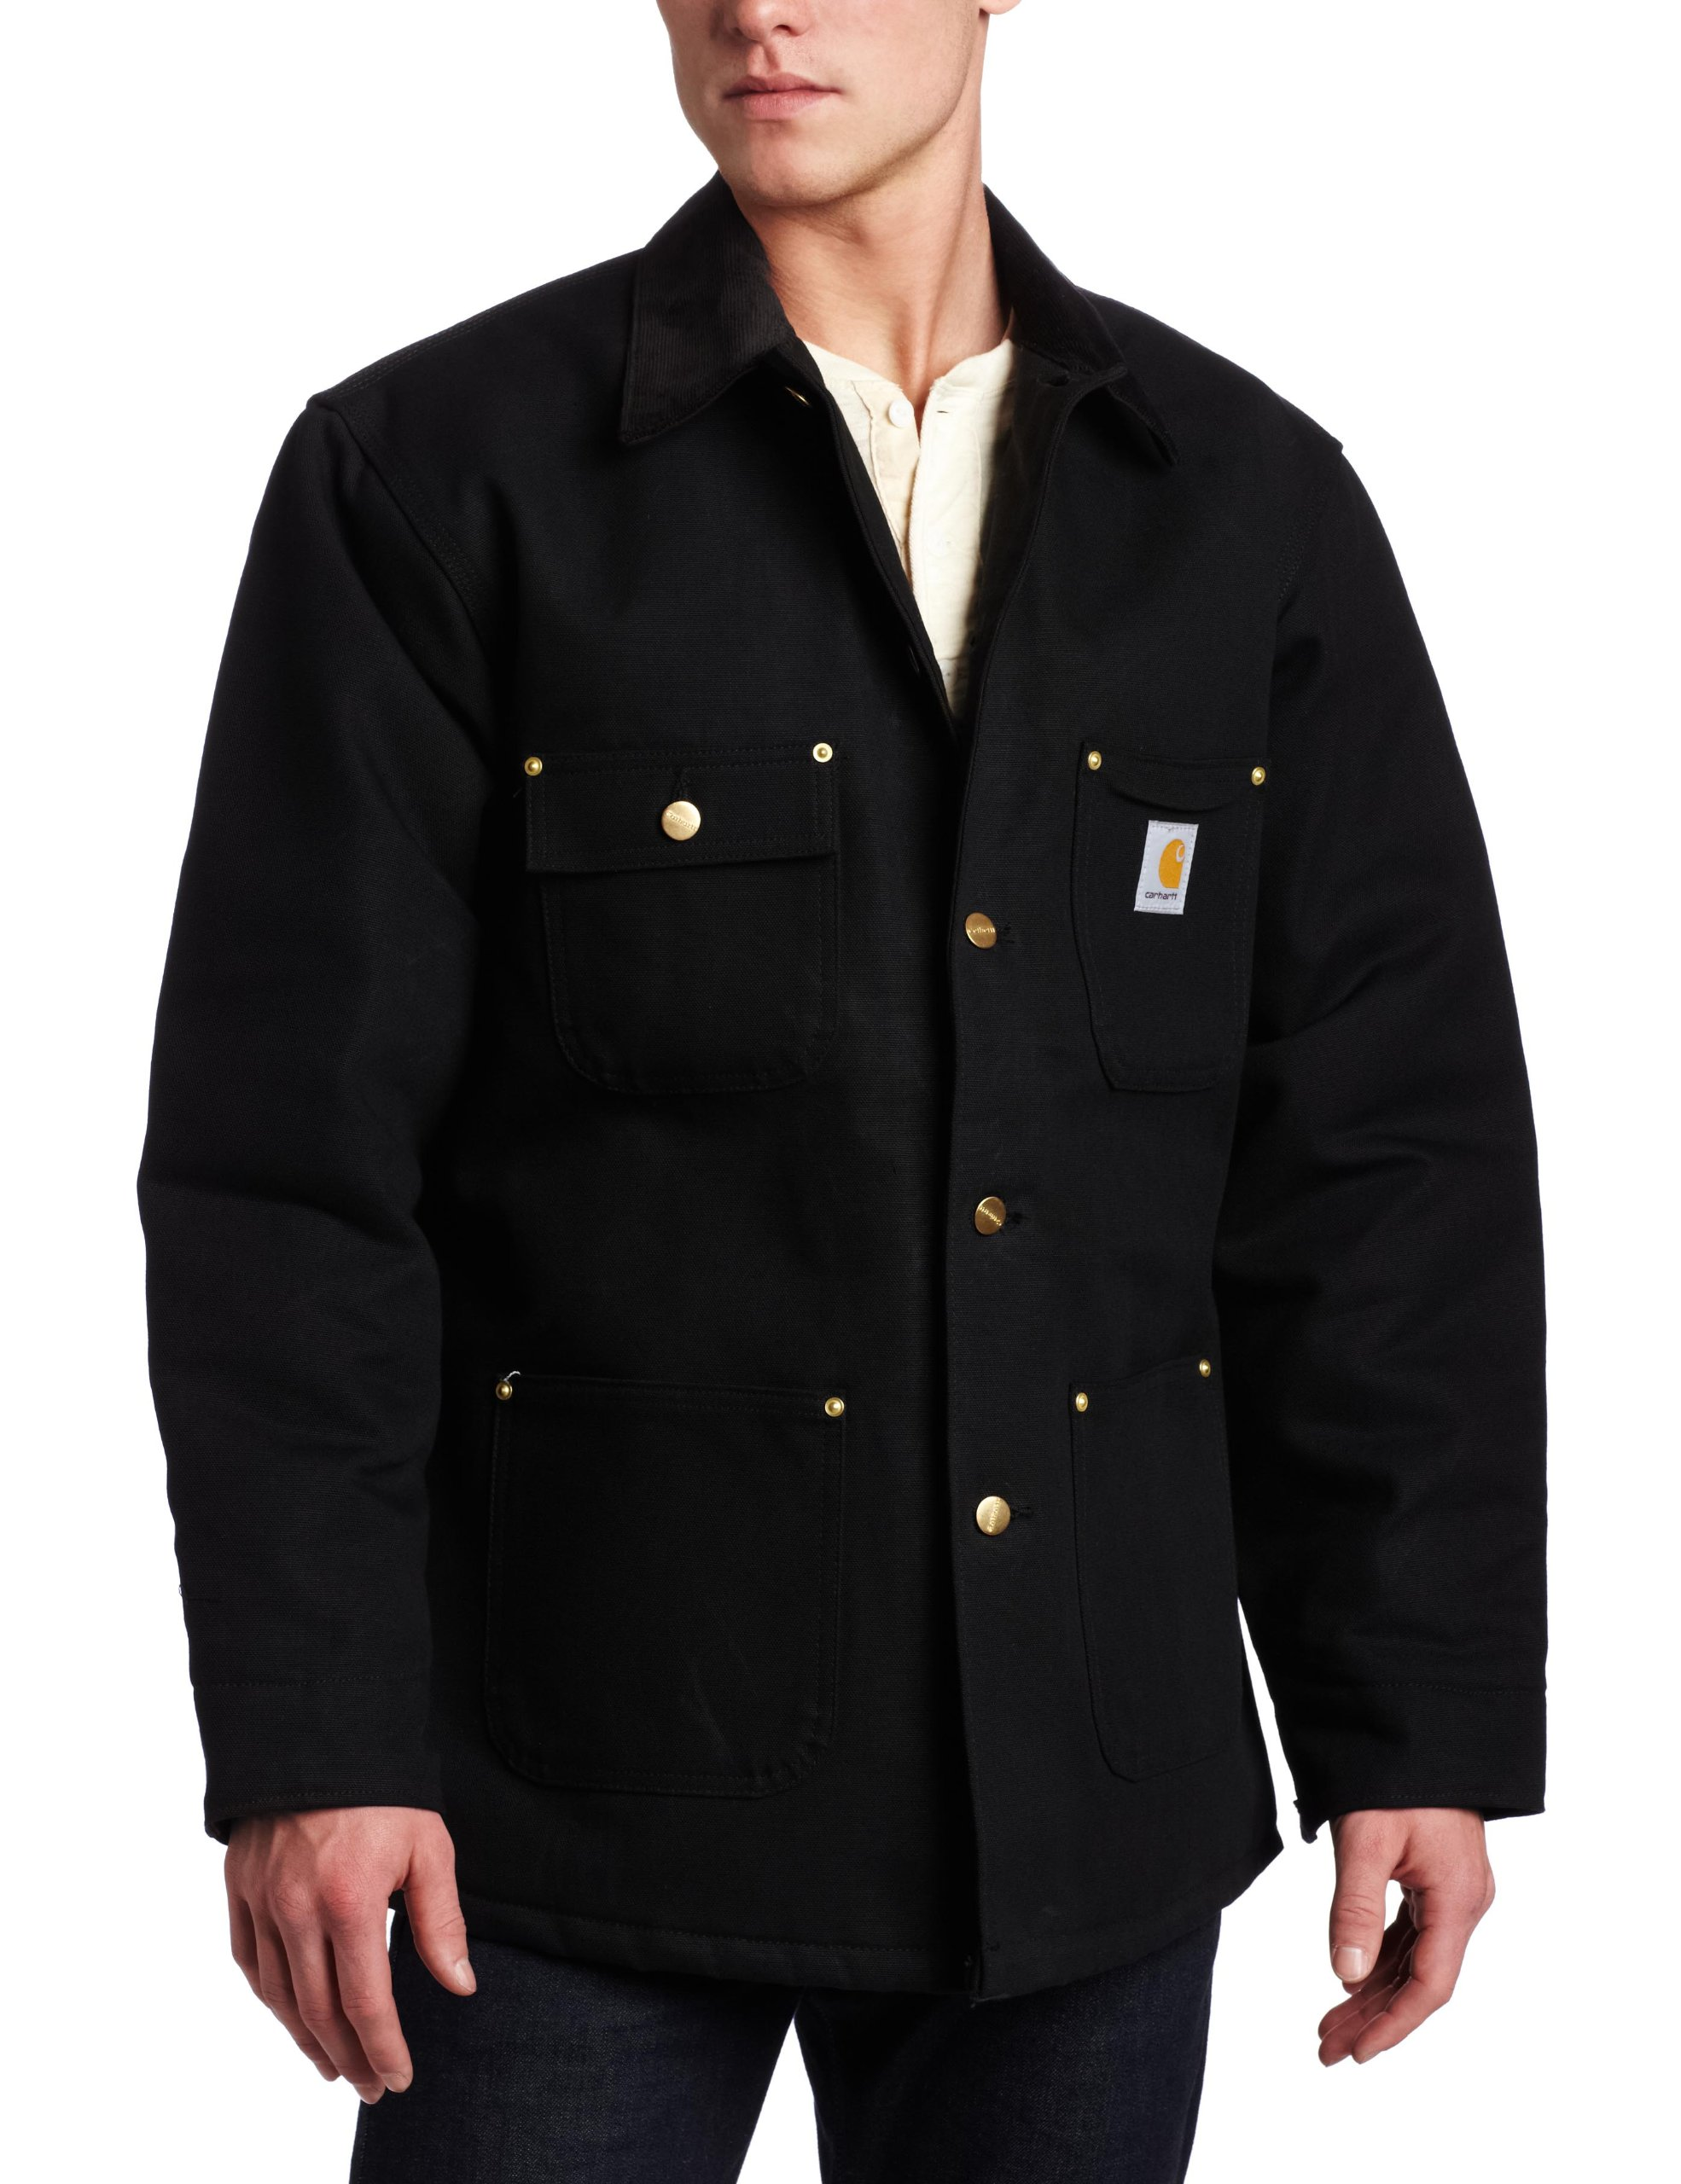 Carhartt Men's Duck Chore Coat Blanket Lined C001,Black,Large